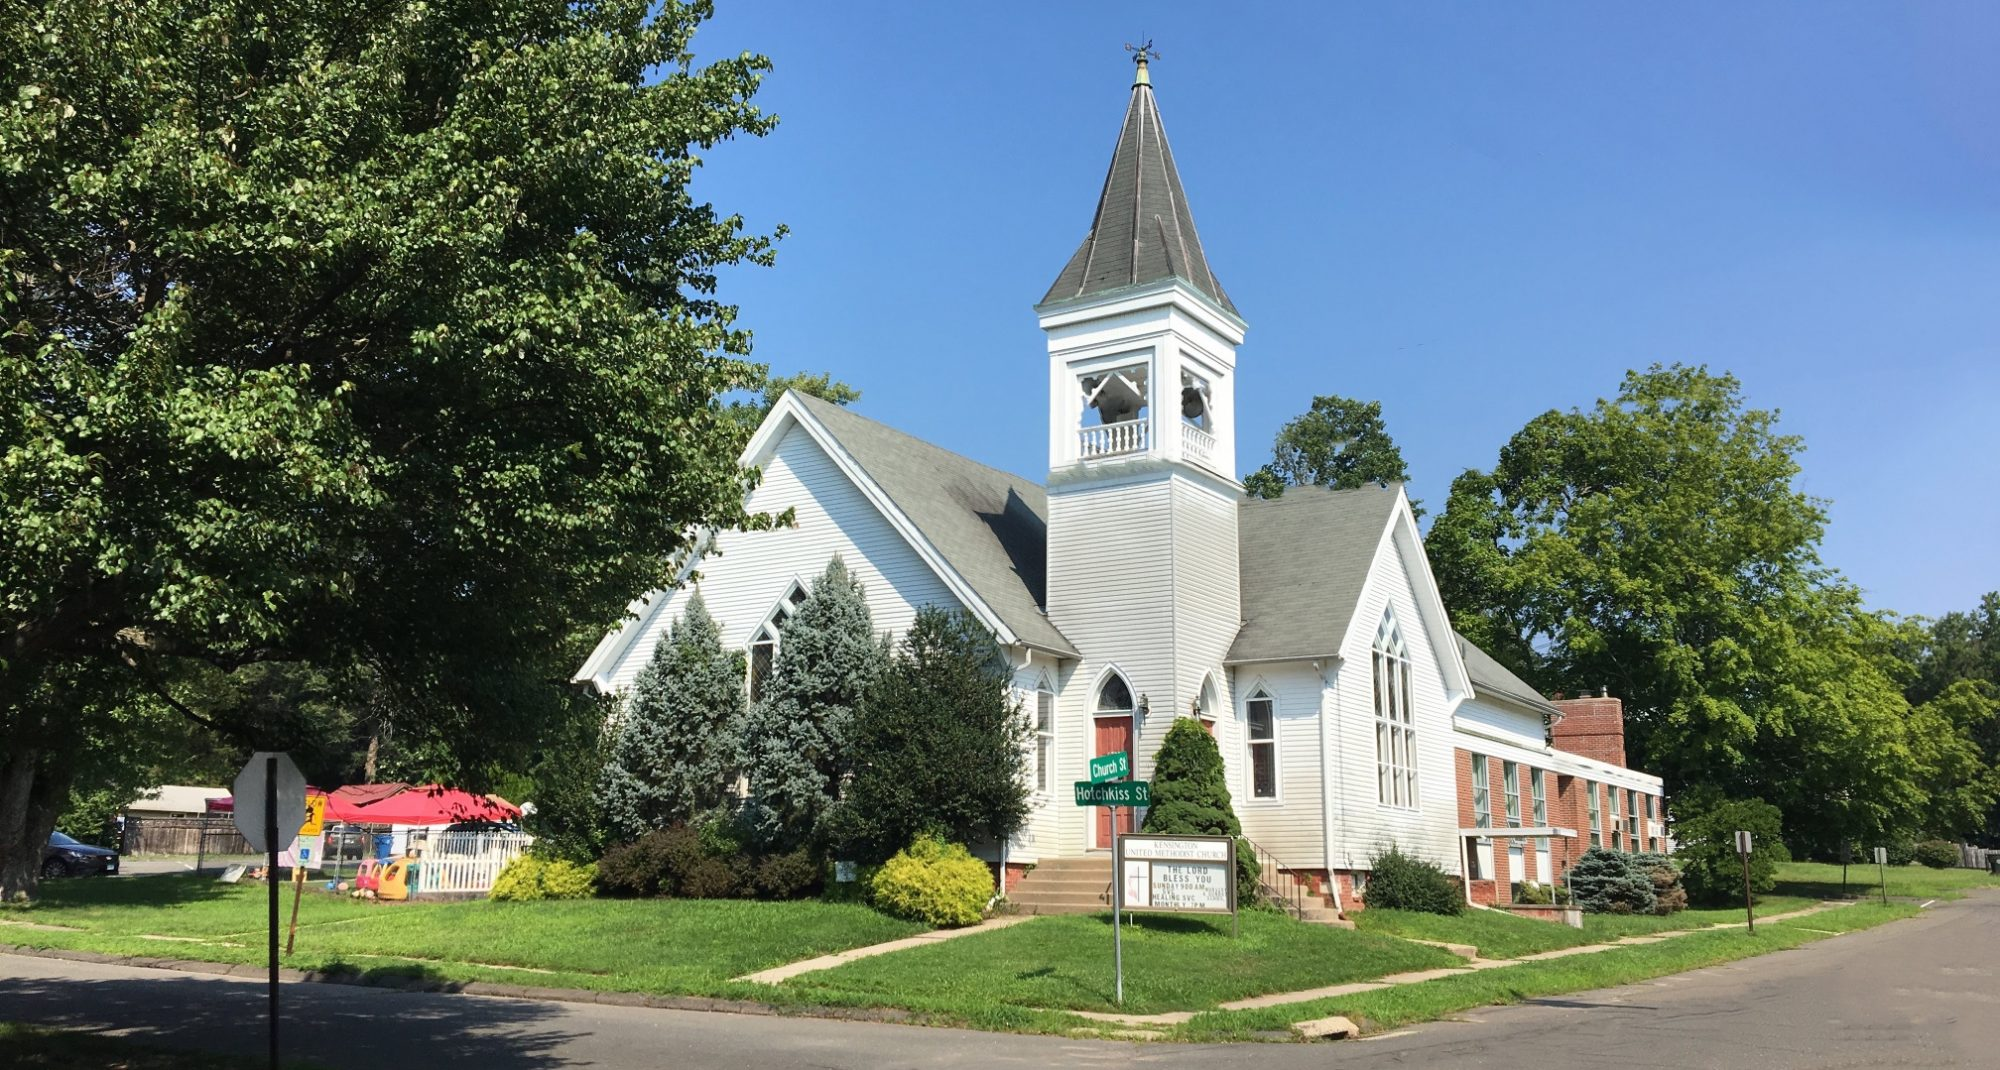 Kensington United Methodist Church